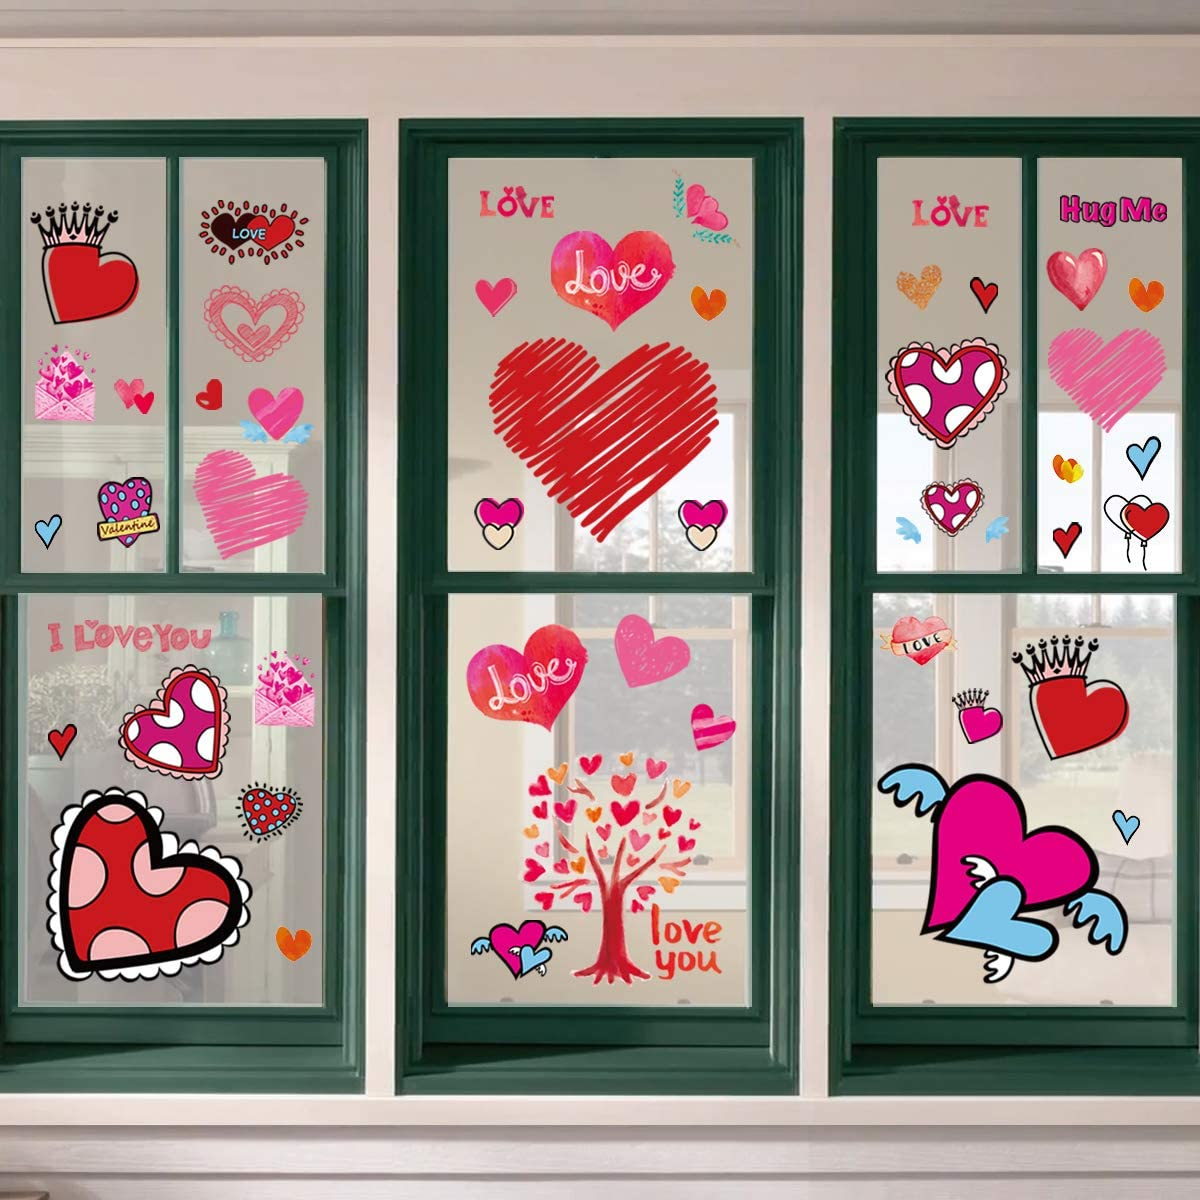 Ivenf Valentines Day Decorations Extra Large Heart Window Clings Decor, Kids School Home Office Valentines Hearts Accessories Birthday Party Supplies Gifts, 6 Sheet 57pcs